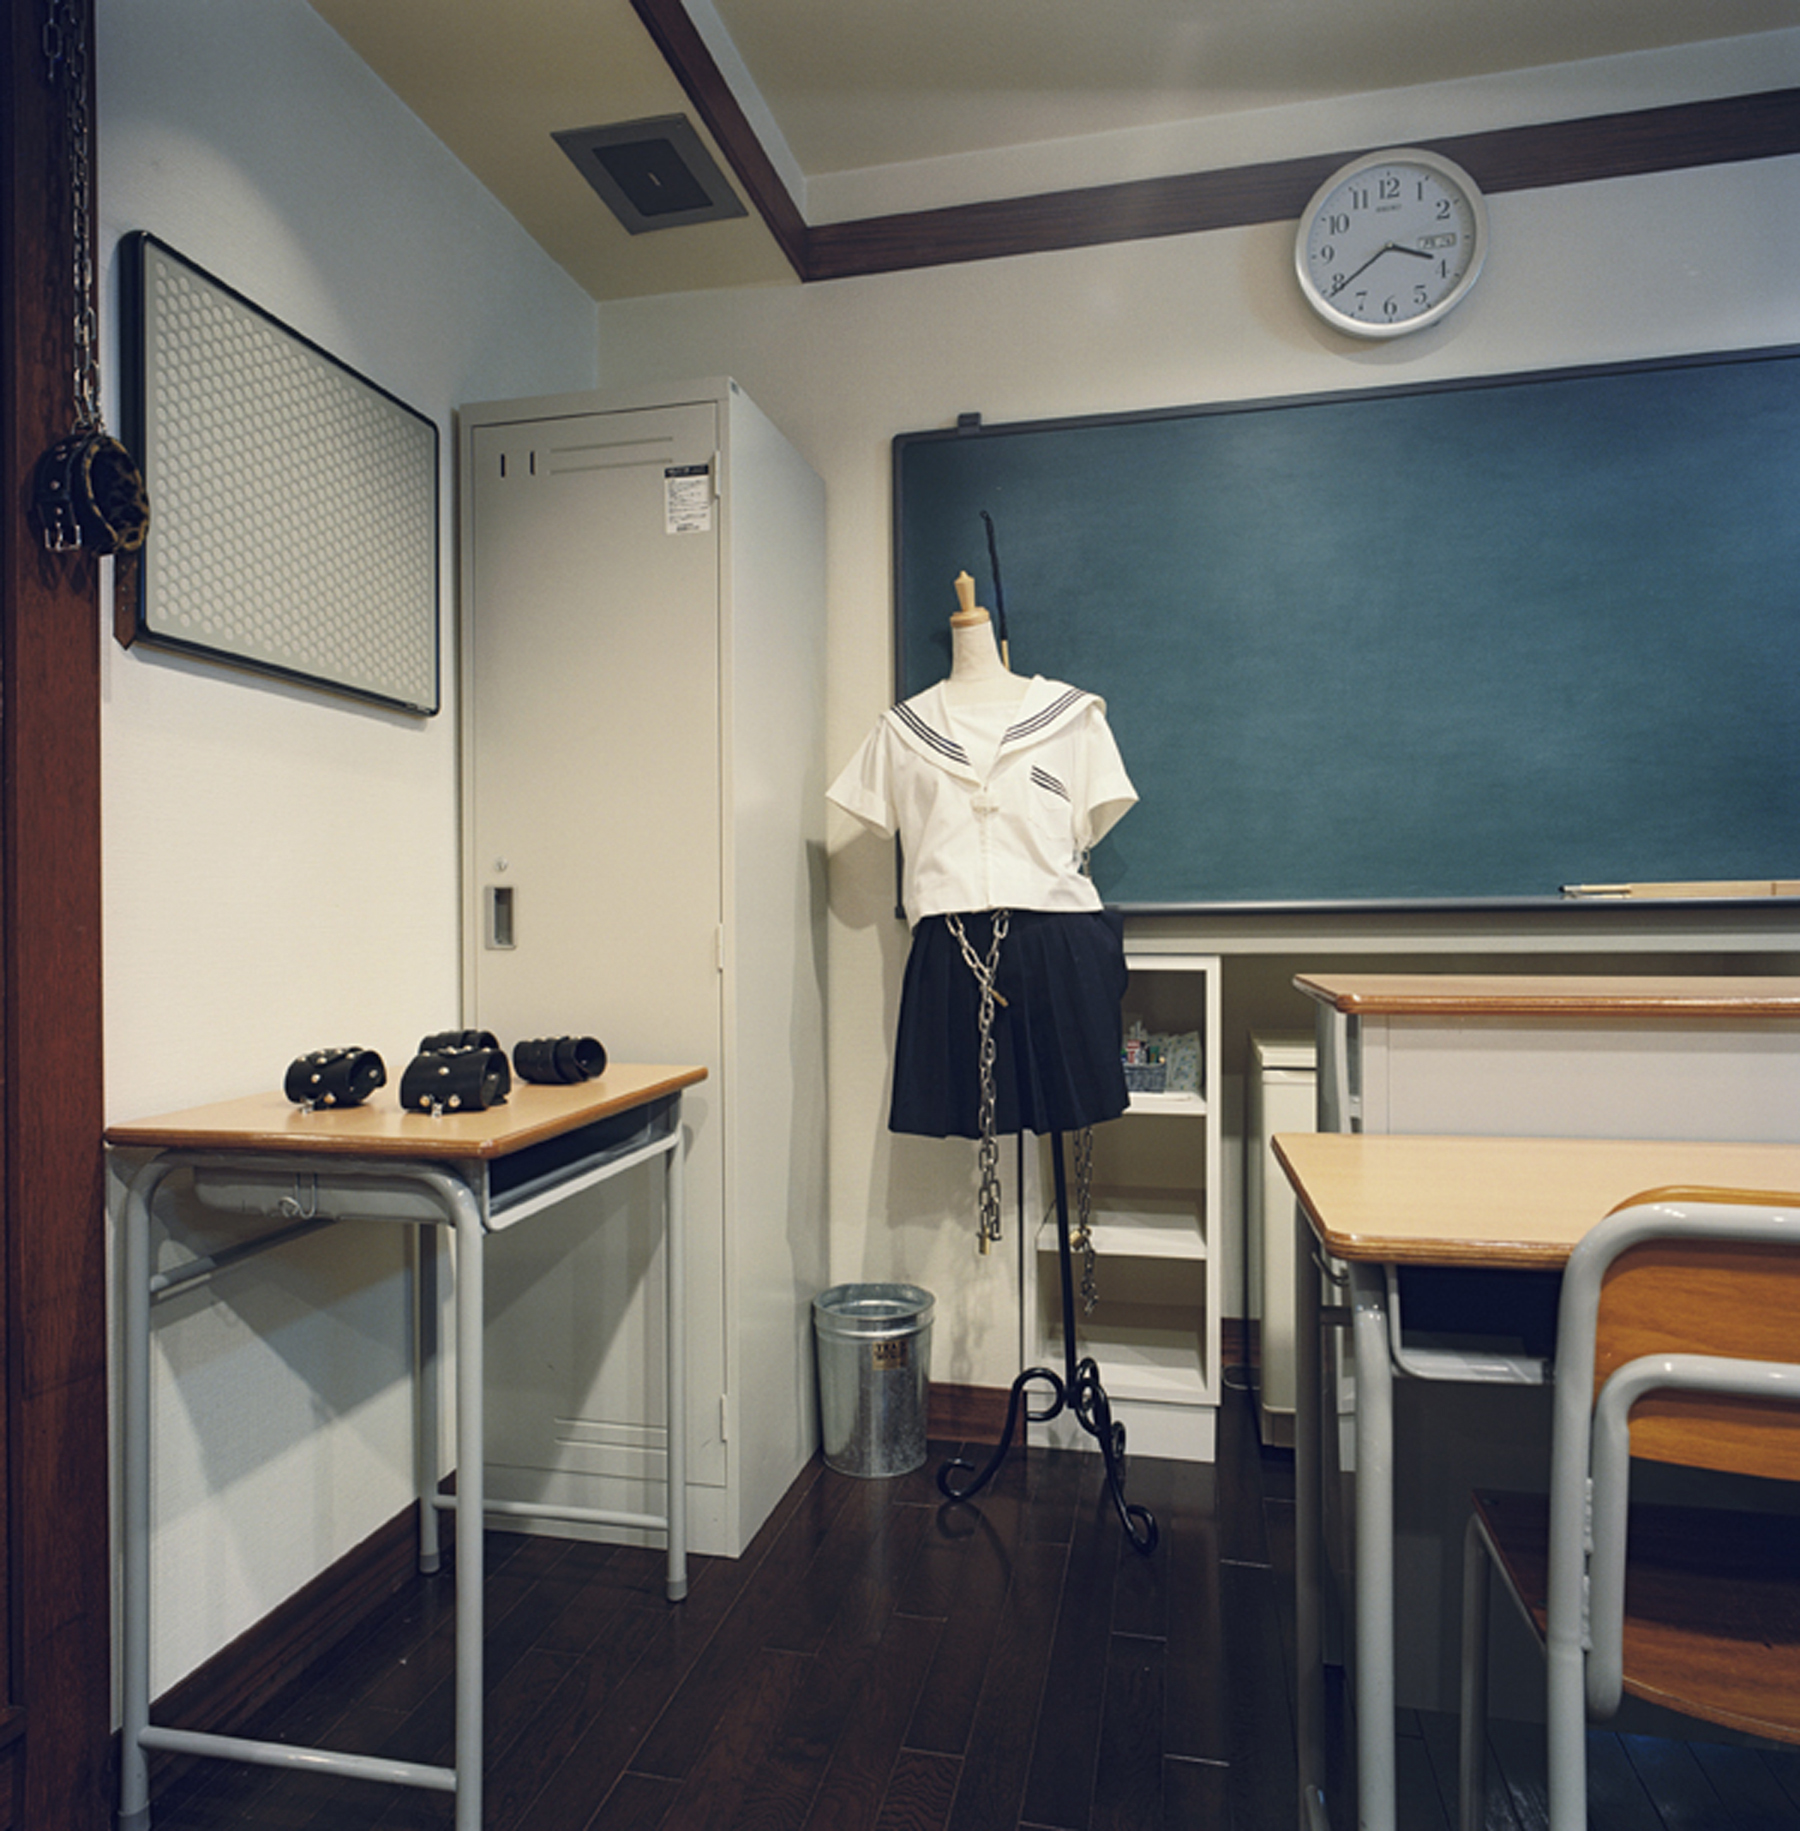 High School Room with Uniform, Hotel Adonis, Osaka